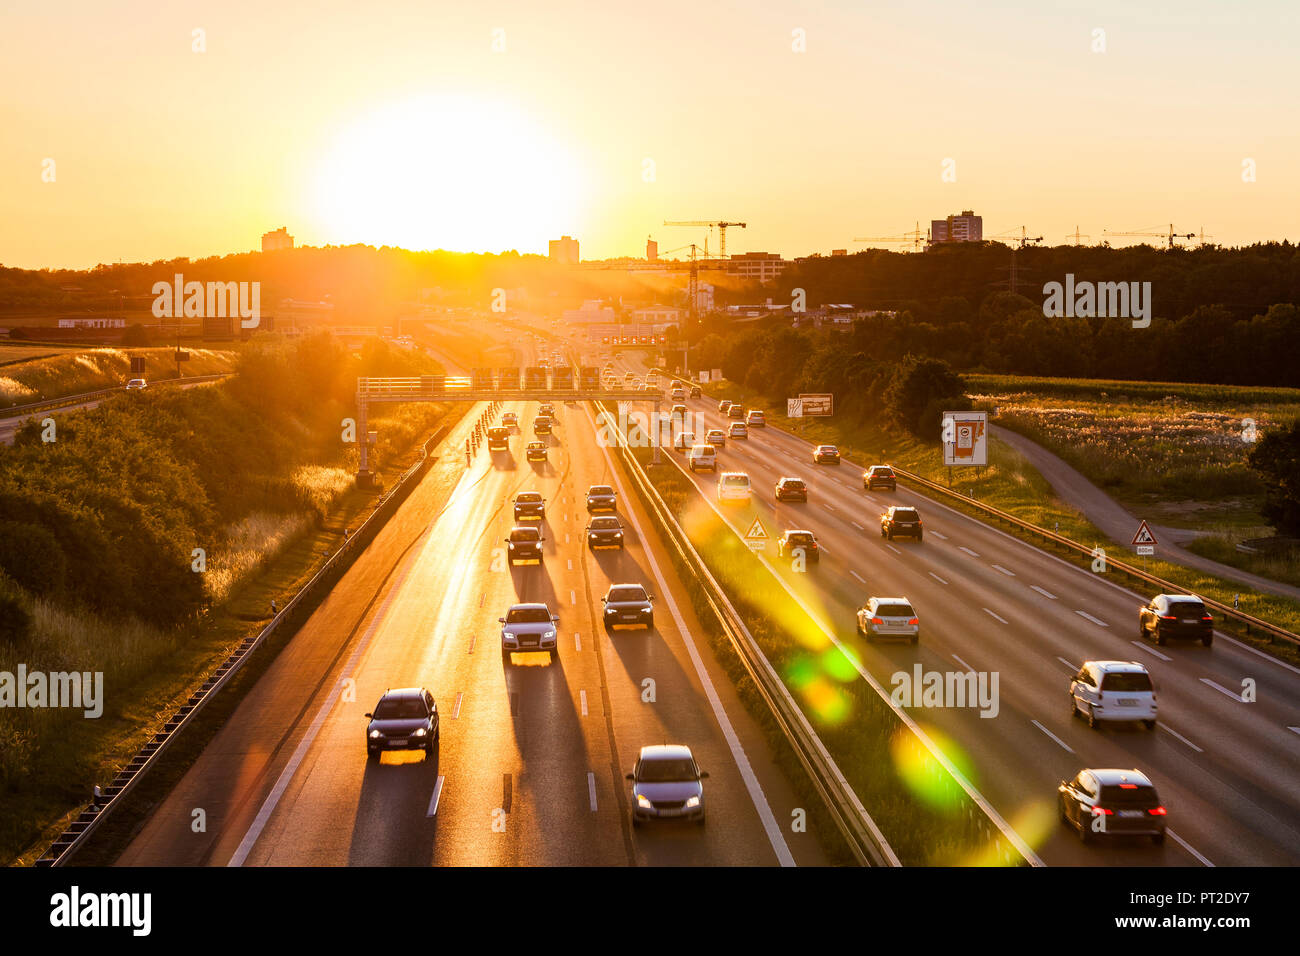 Germany, Baden-Wuerttemberg, Stuttgart, Autobahn A8 in the evening - Stock Image